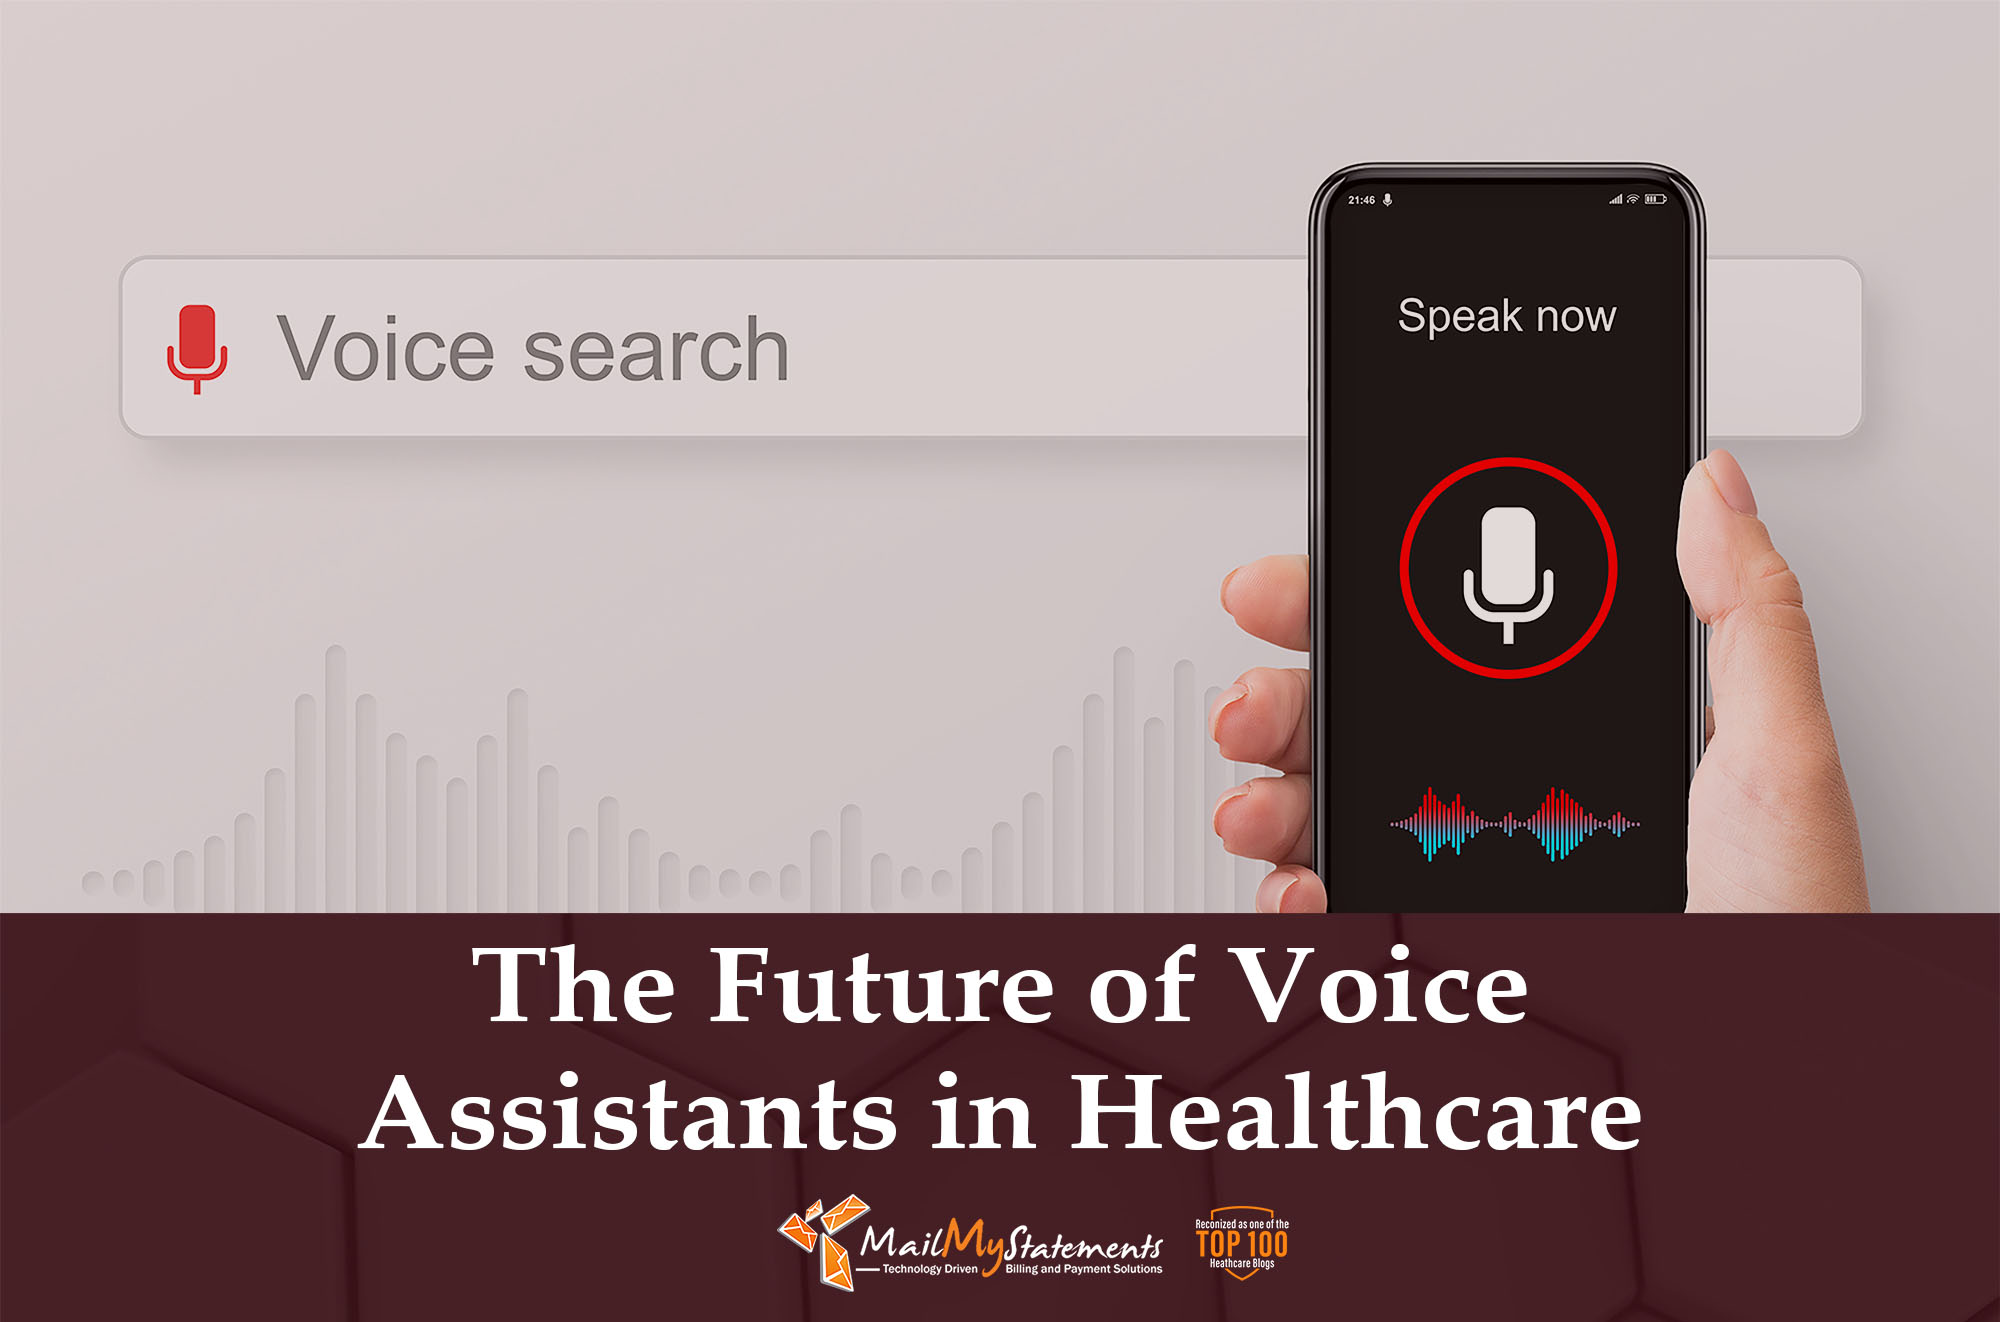 The Future of Voice Assistants in Healthcare